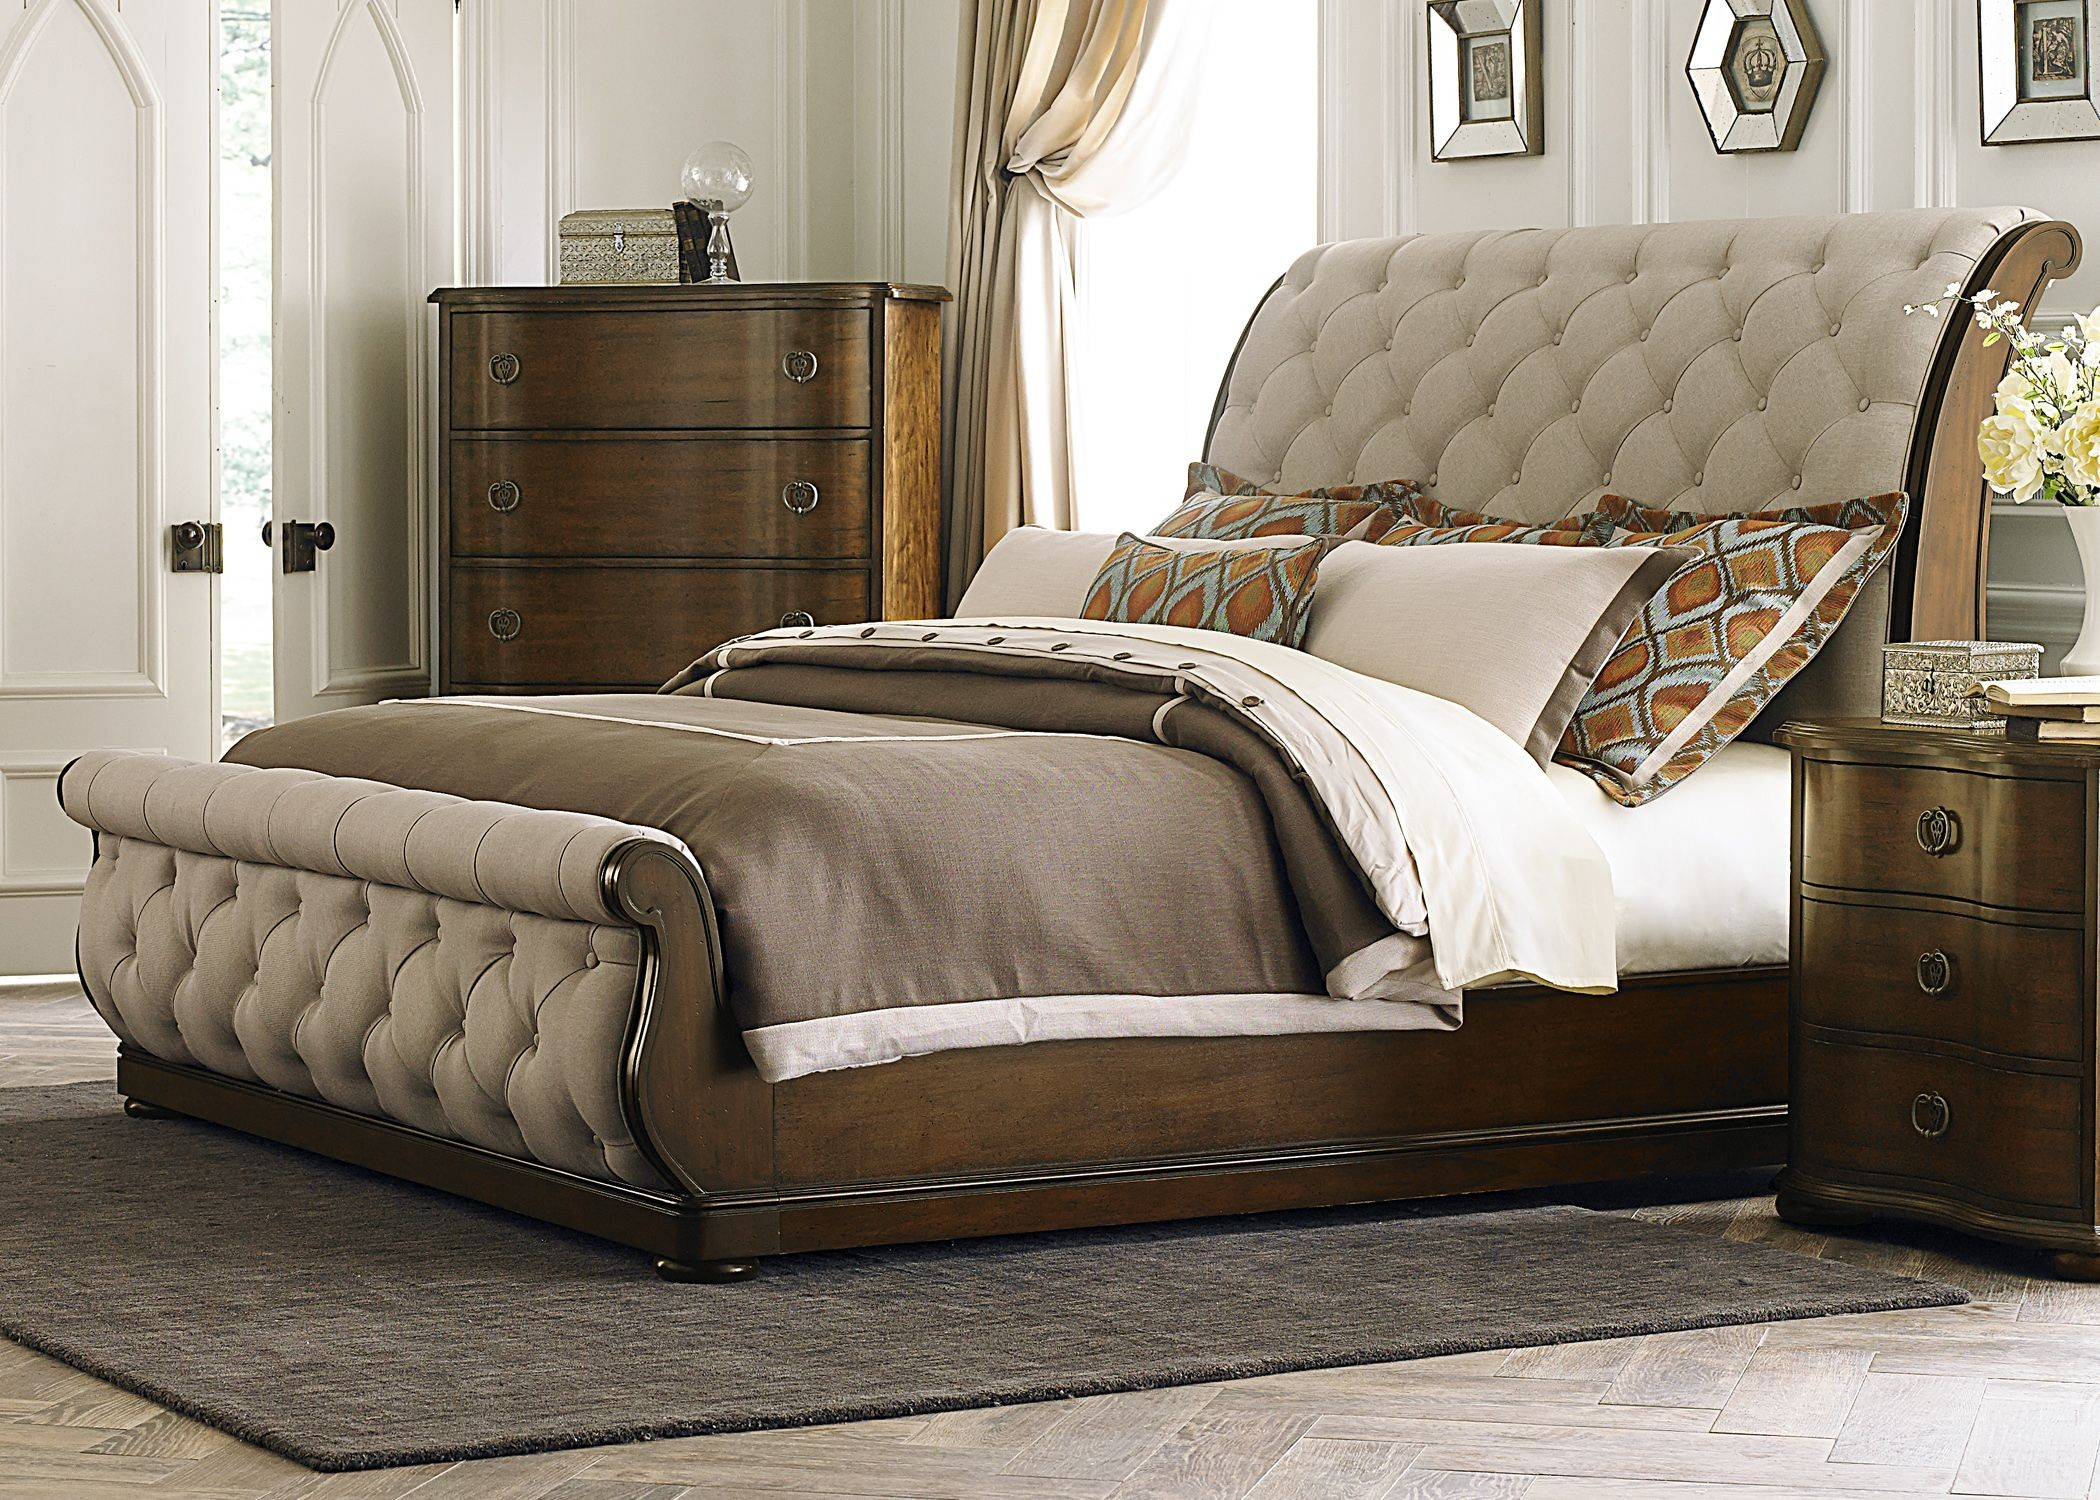 cotswold king upholstered sleigh bed from liberty 545 br ksl coleman furniture. Black Bedroom Furniture Sets. Home Design Ideas